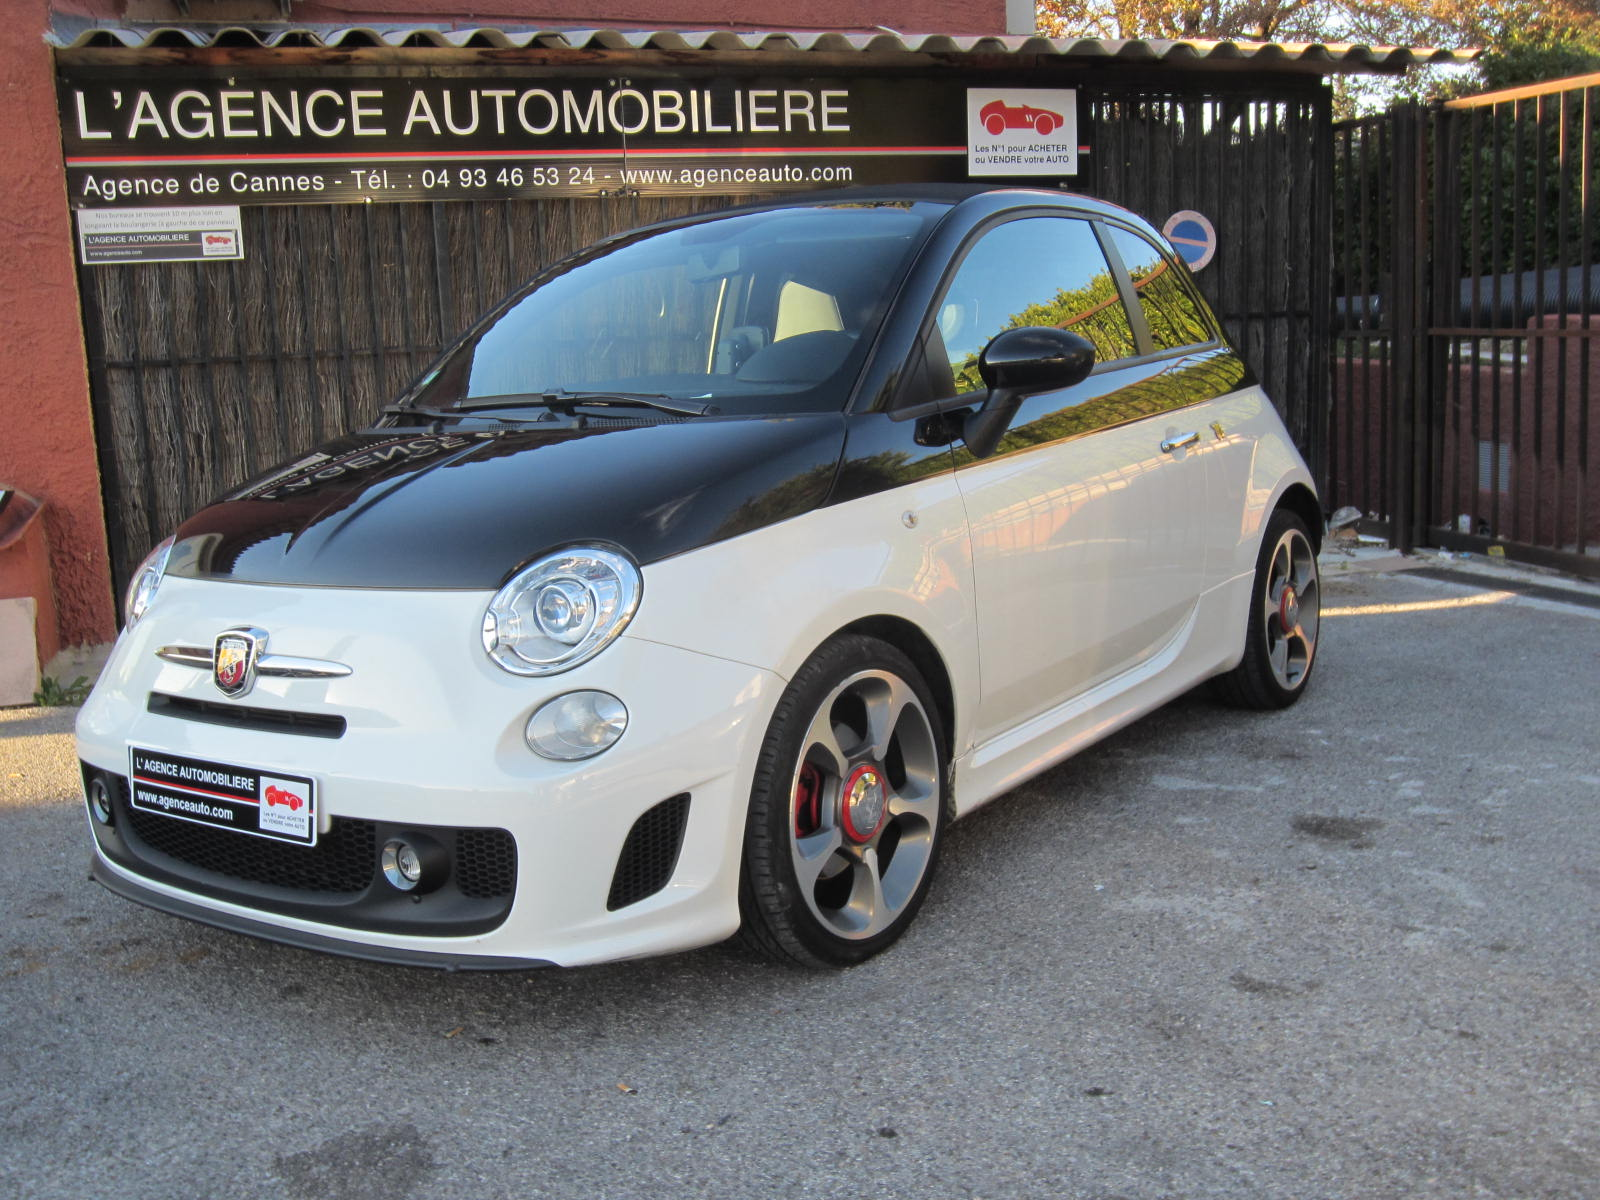 fiat 500 cabriolet abarth 1 4 t occasion cannes pas cher. Black Bedroom Furniture Sets. Home Design Ideas